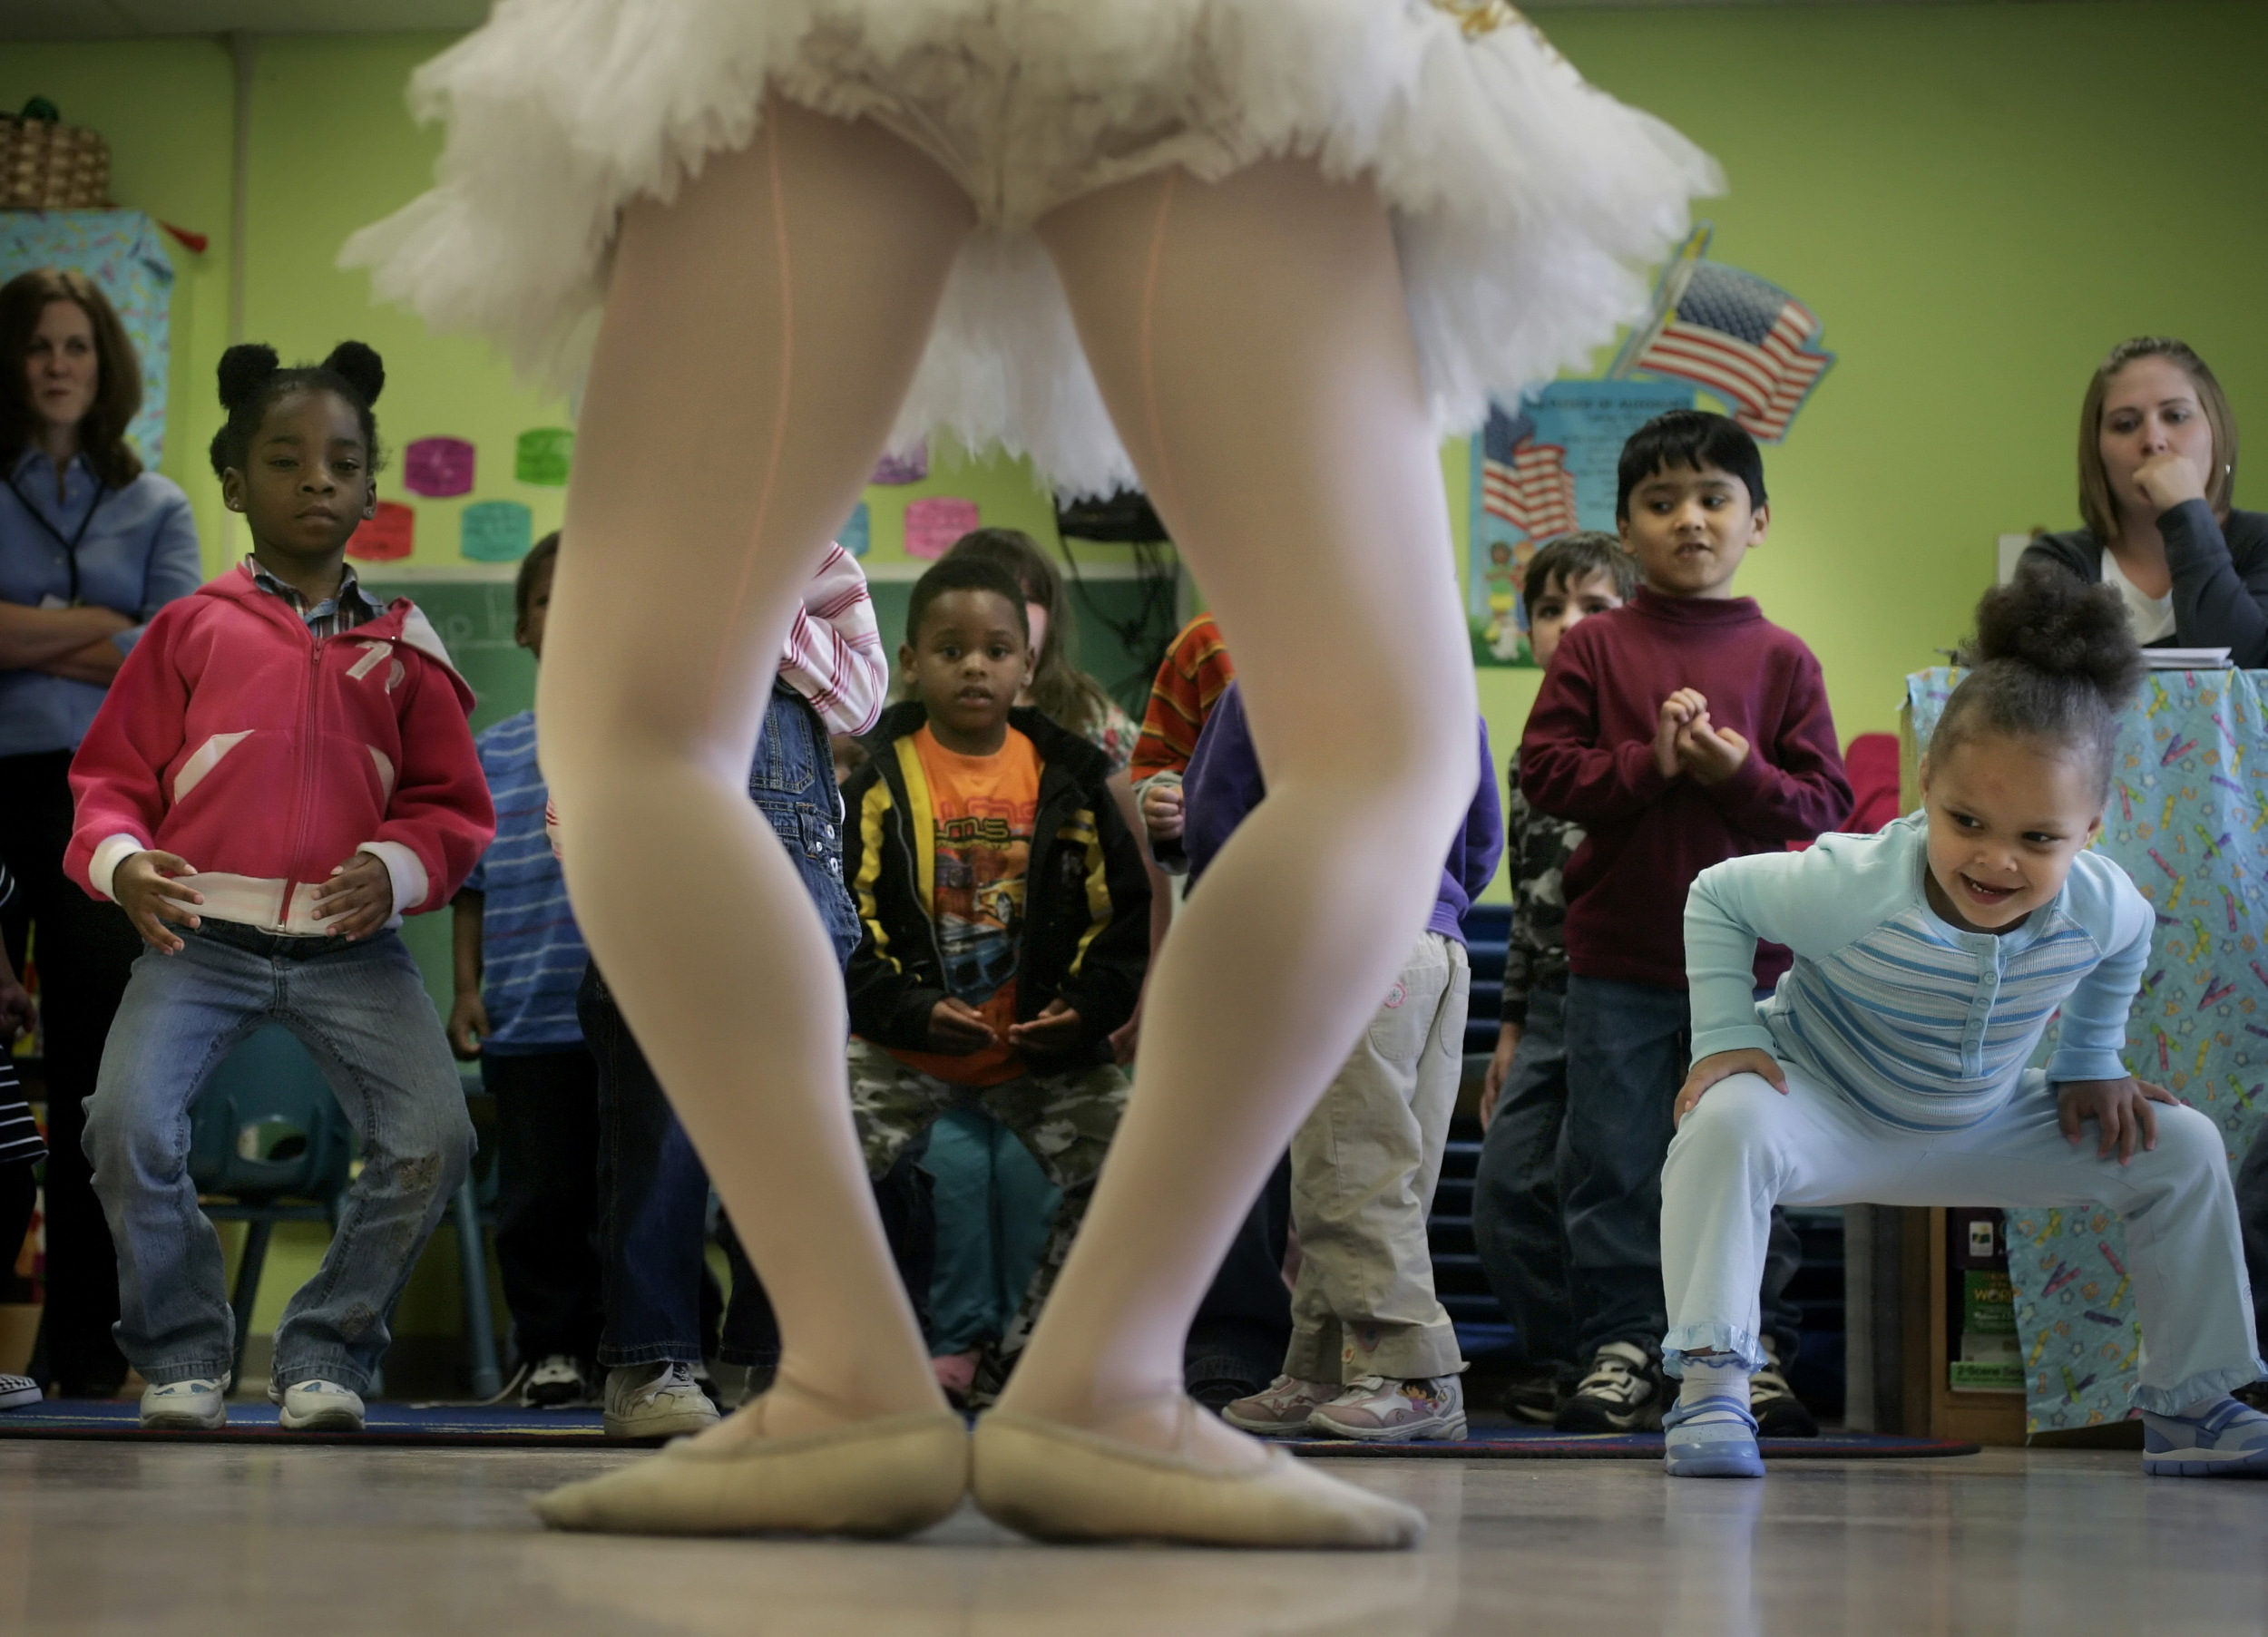 Whitney Edwards of the Nashville Ballet dances with children at Centerstone, a therapeutic pre-k program, in Nashville, Tenn.